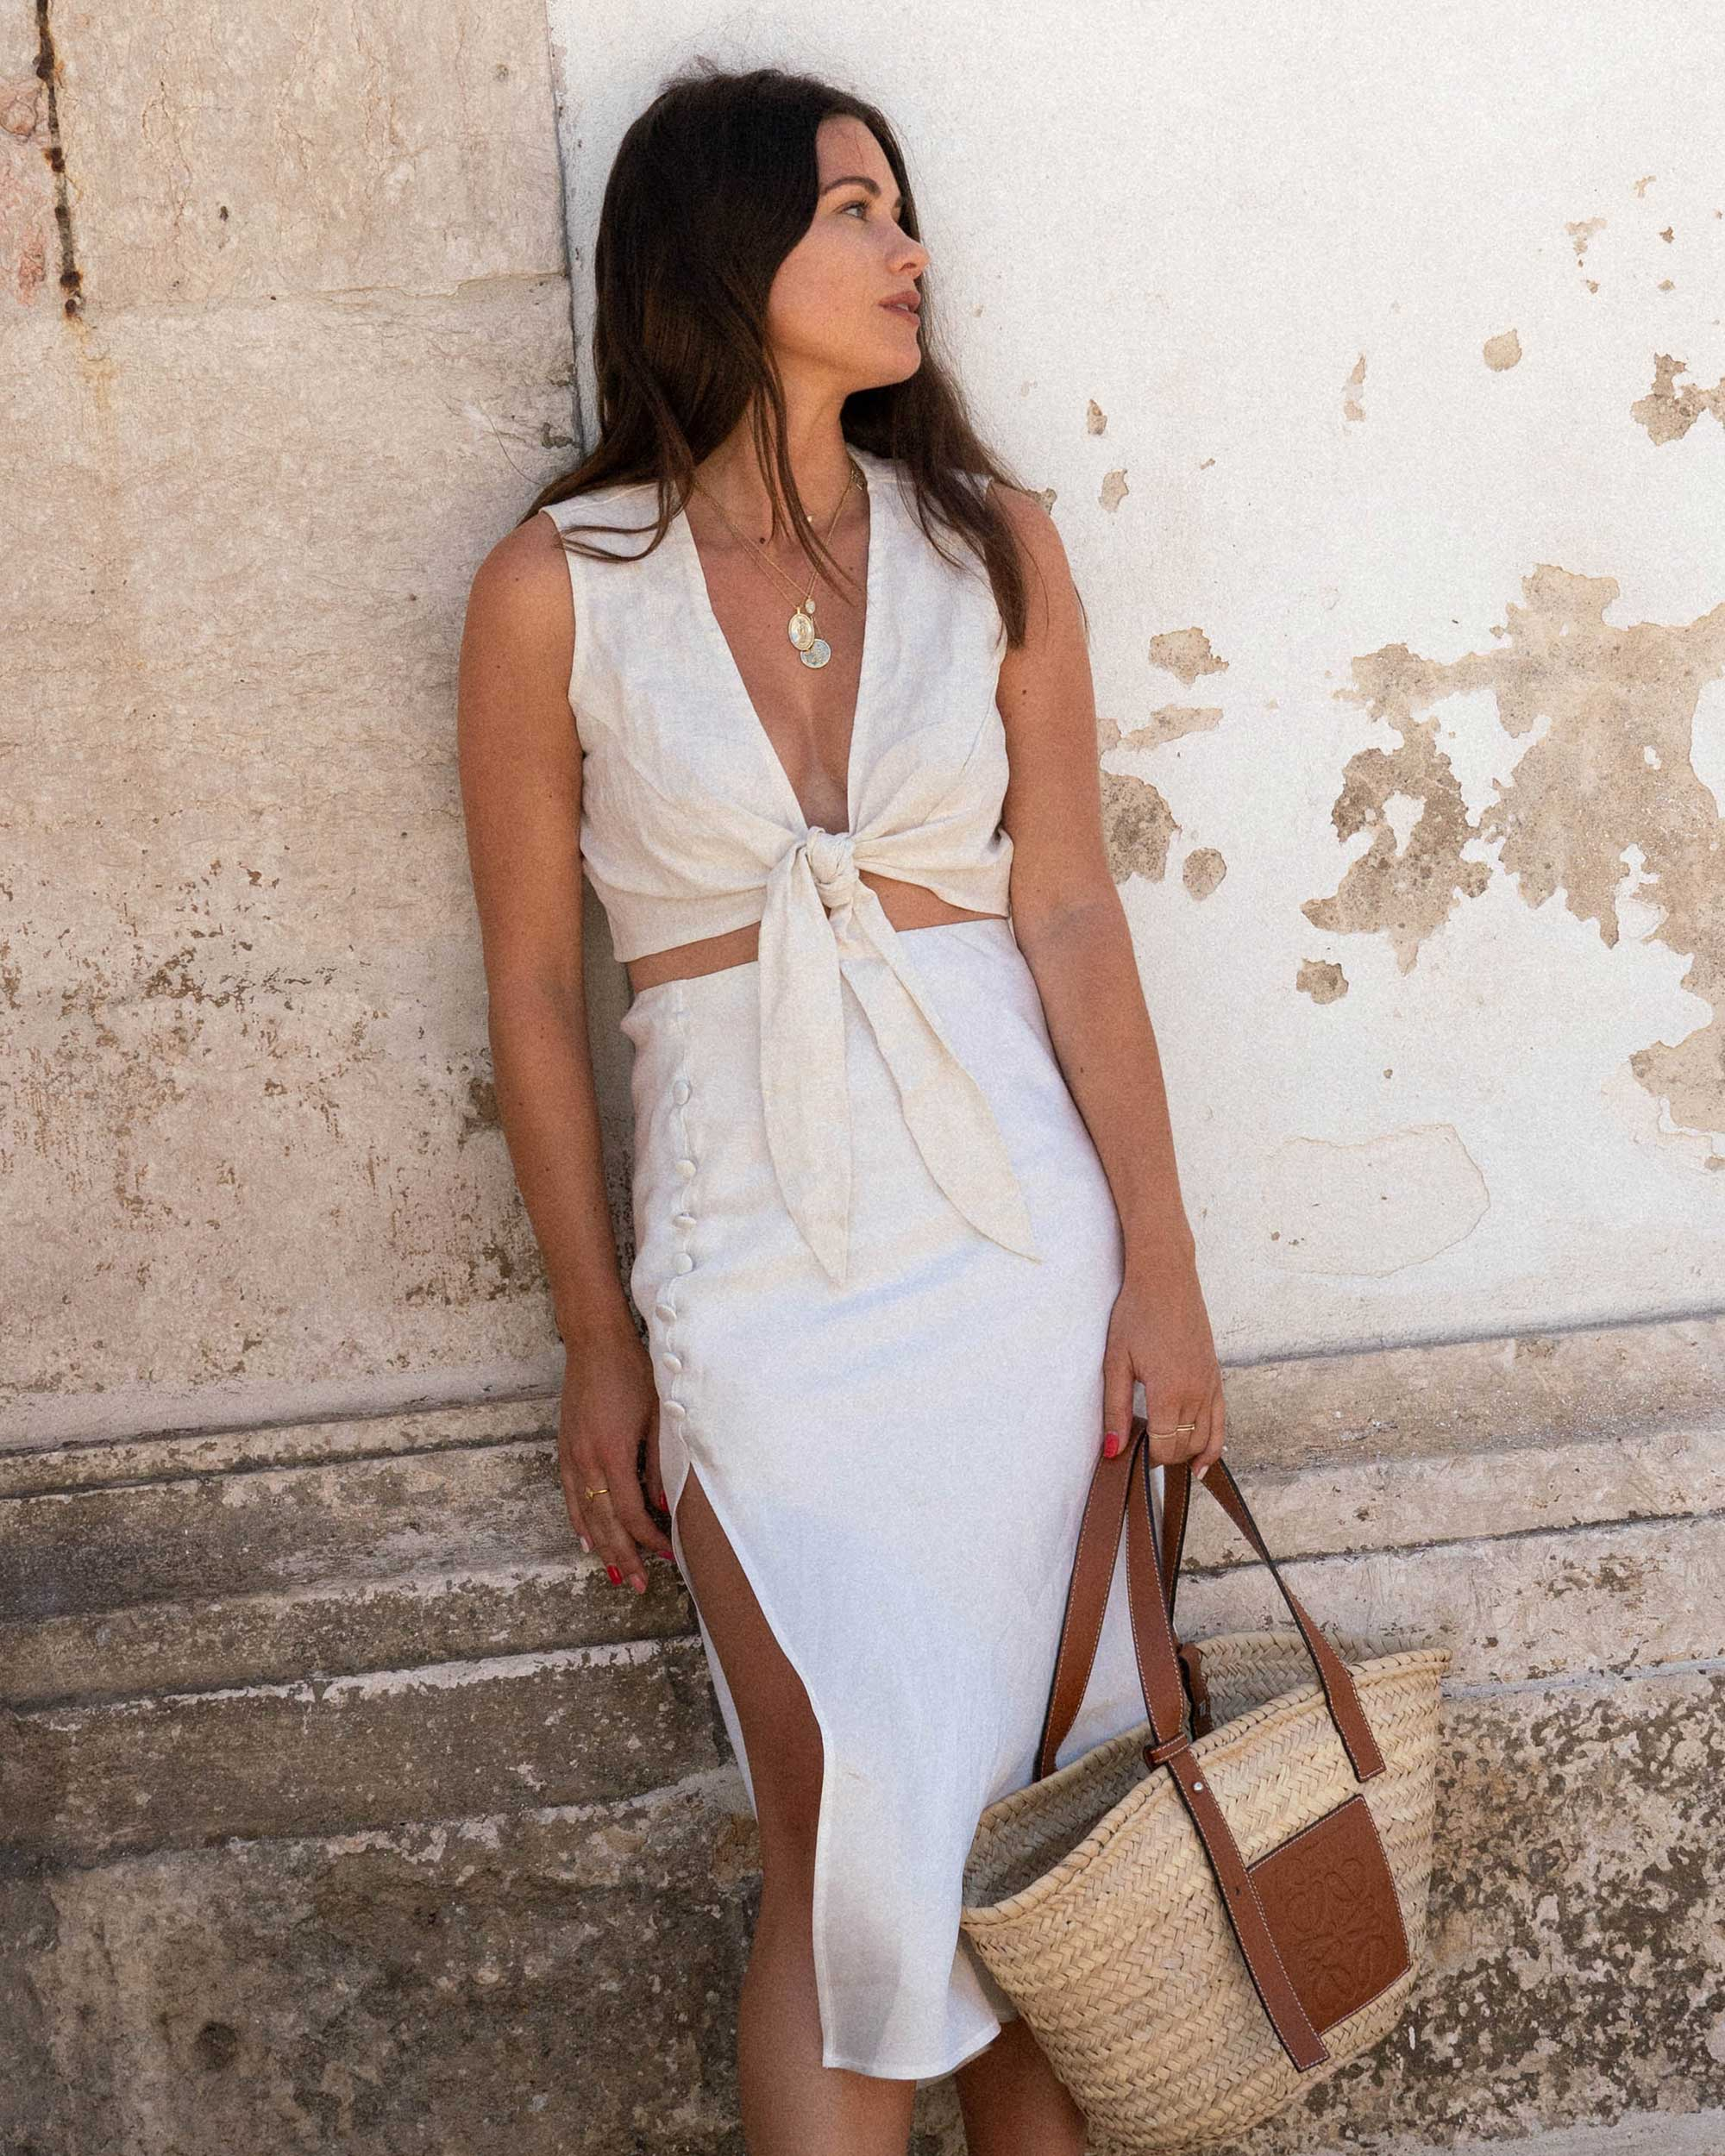 Sarah Butler of Sarah Styles Seattle wears Faithfull the Brand Marcie Plunging Cropped Tie Top and Loewe Raffia Basket Tote Bag in Lisbon, Portugal | @sarahchristine - 6.jpg